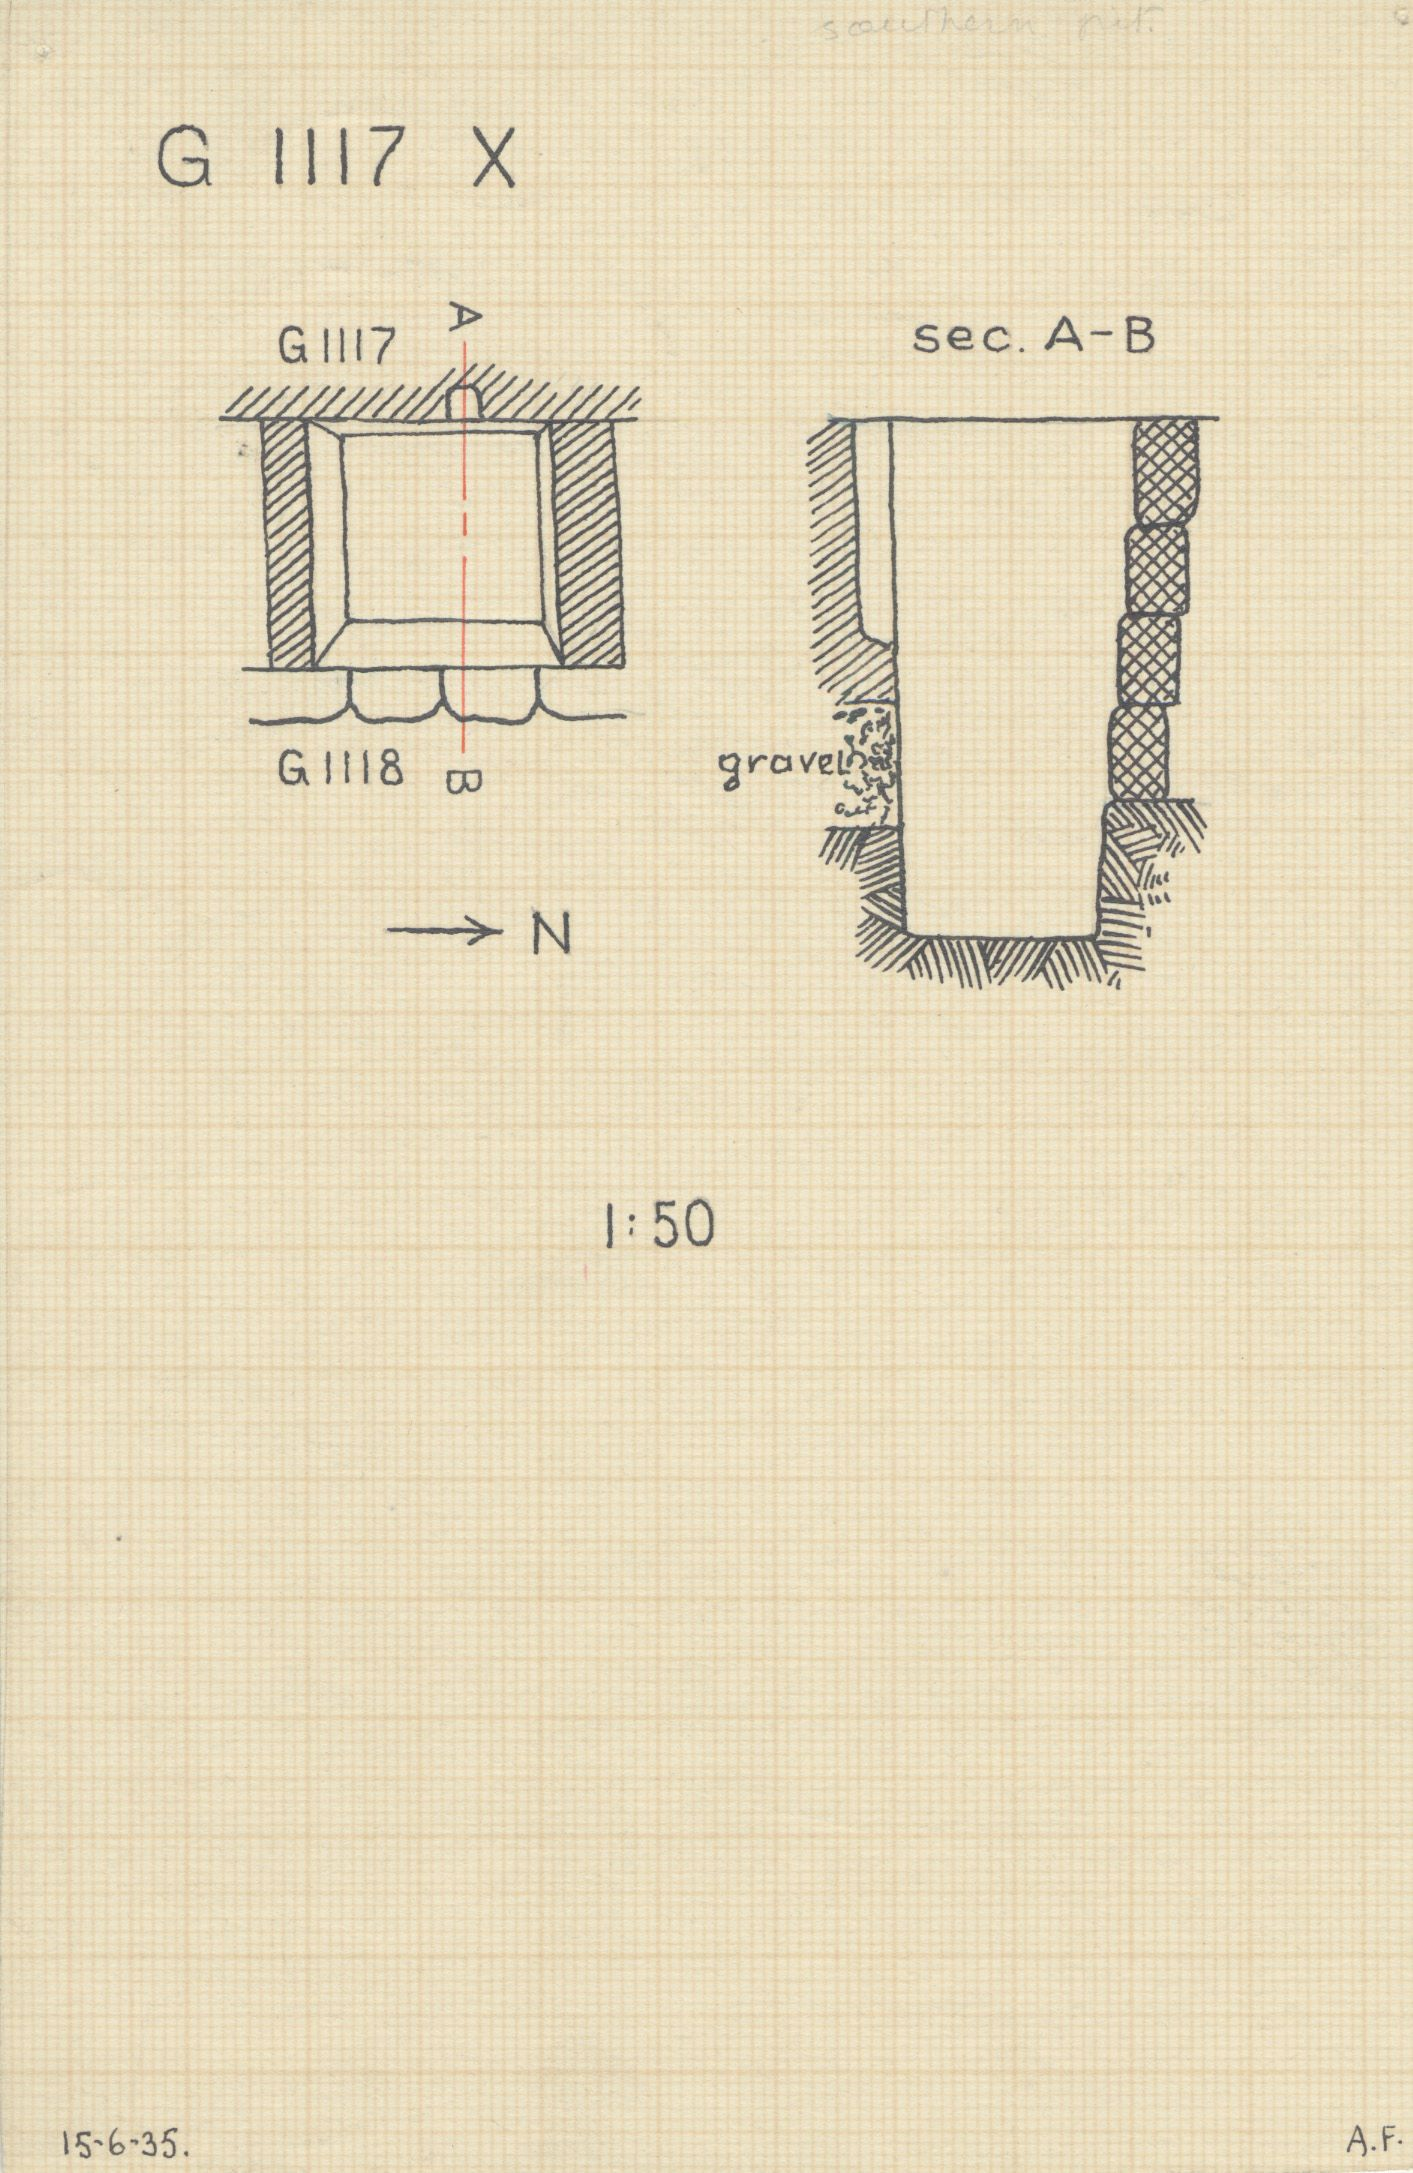 Maps and plans: G 1117, Shaft X